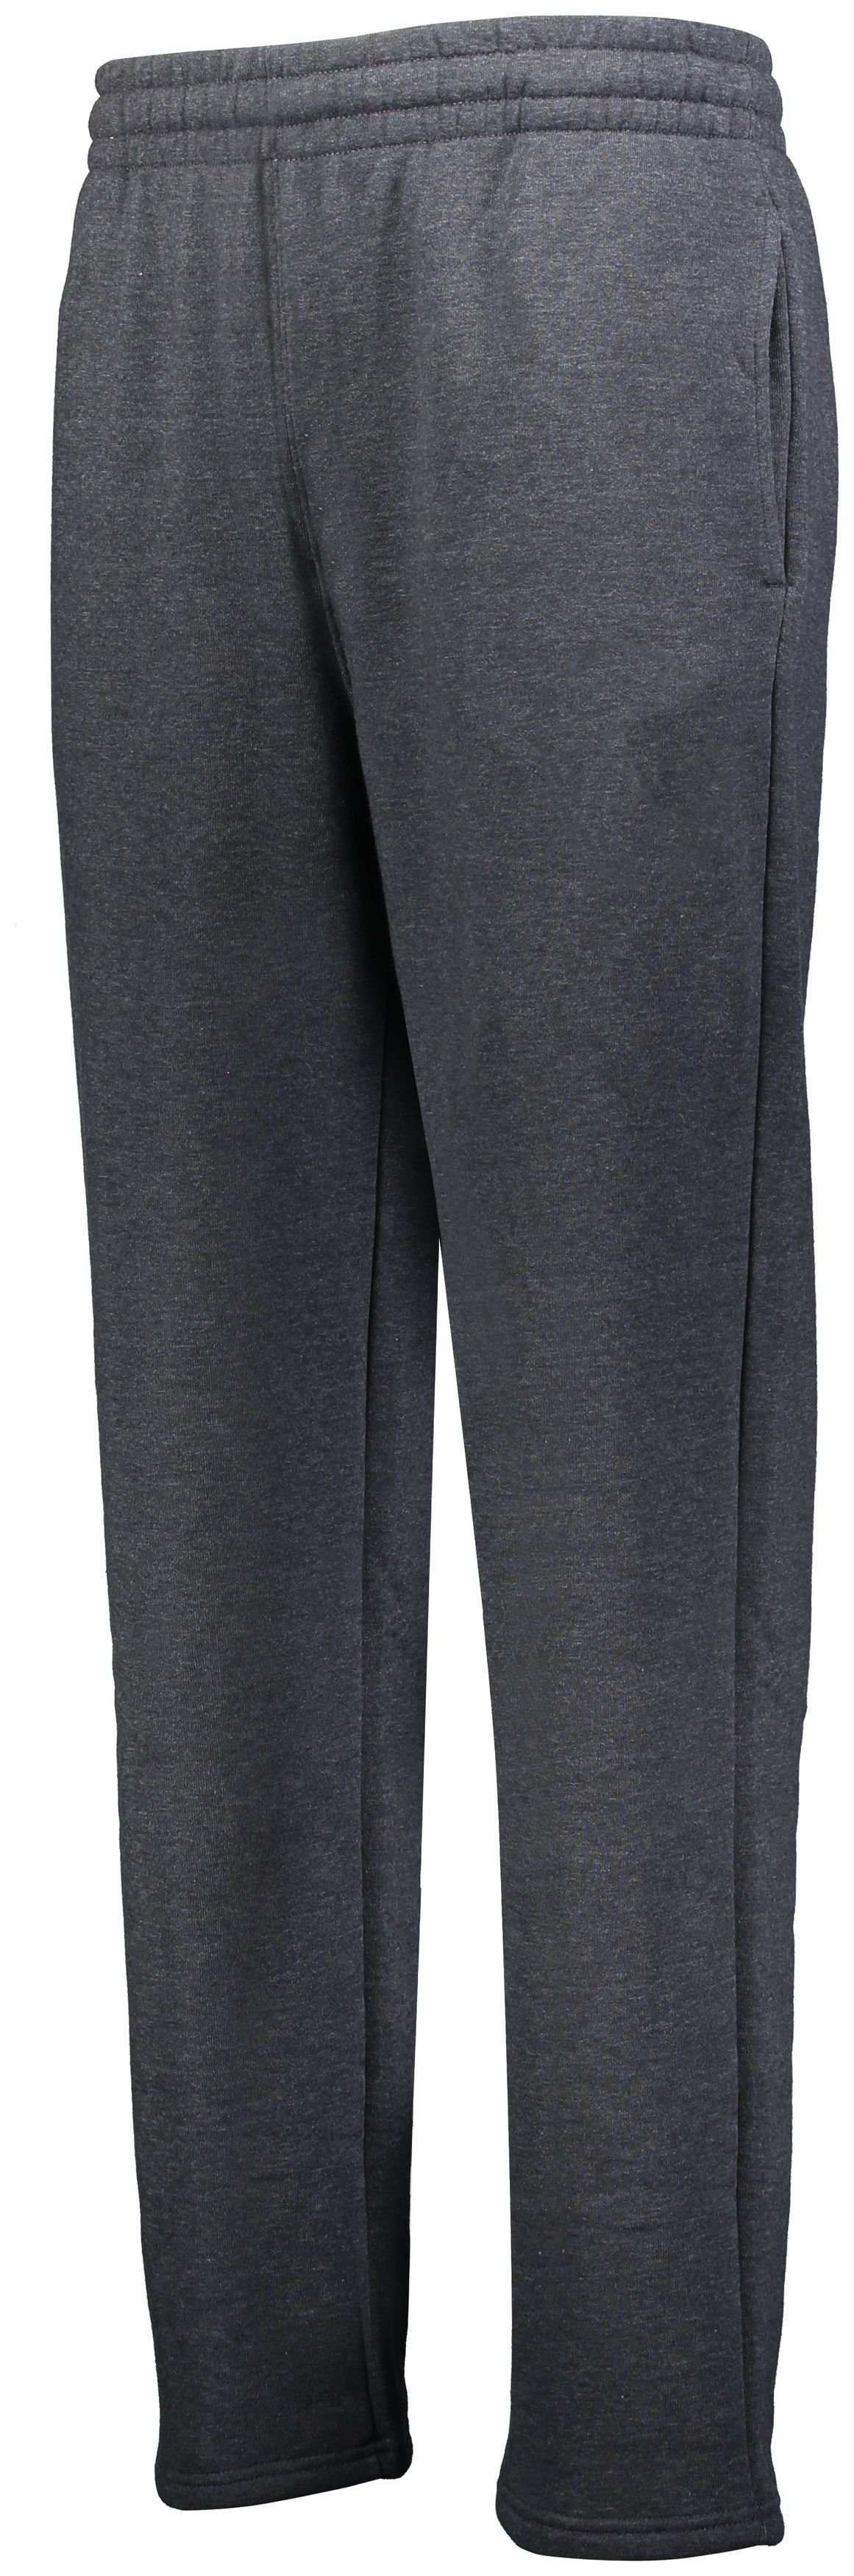 80/20 Open Bottom Sweatpant - Charcoal Grey Heather